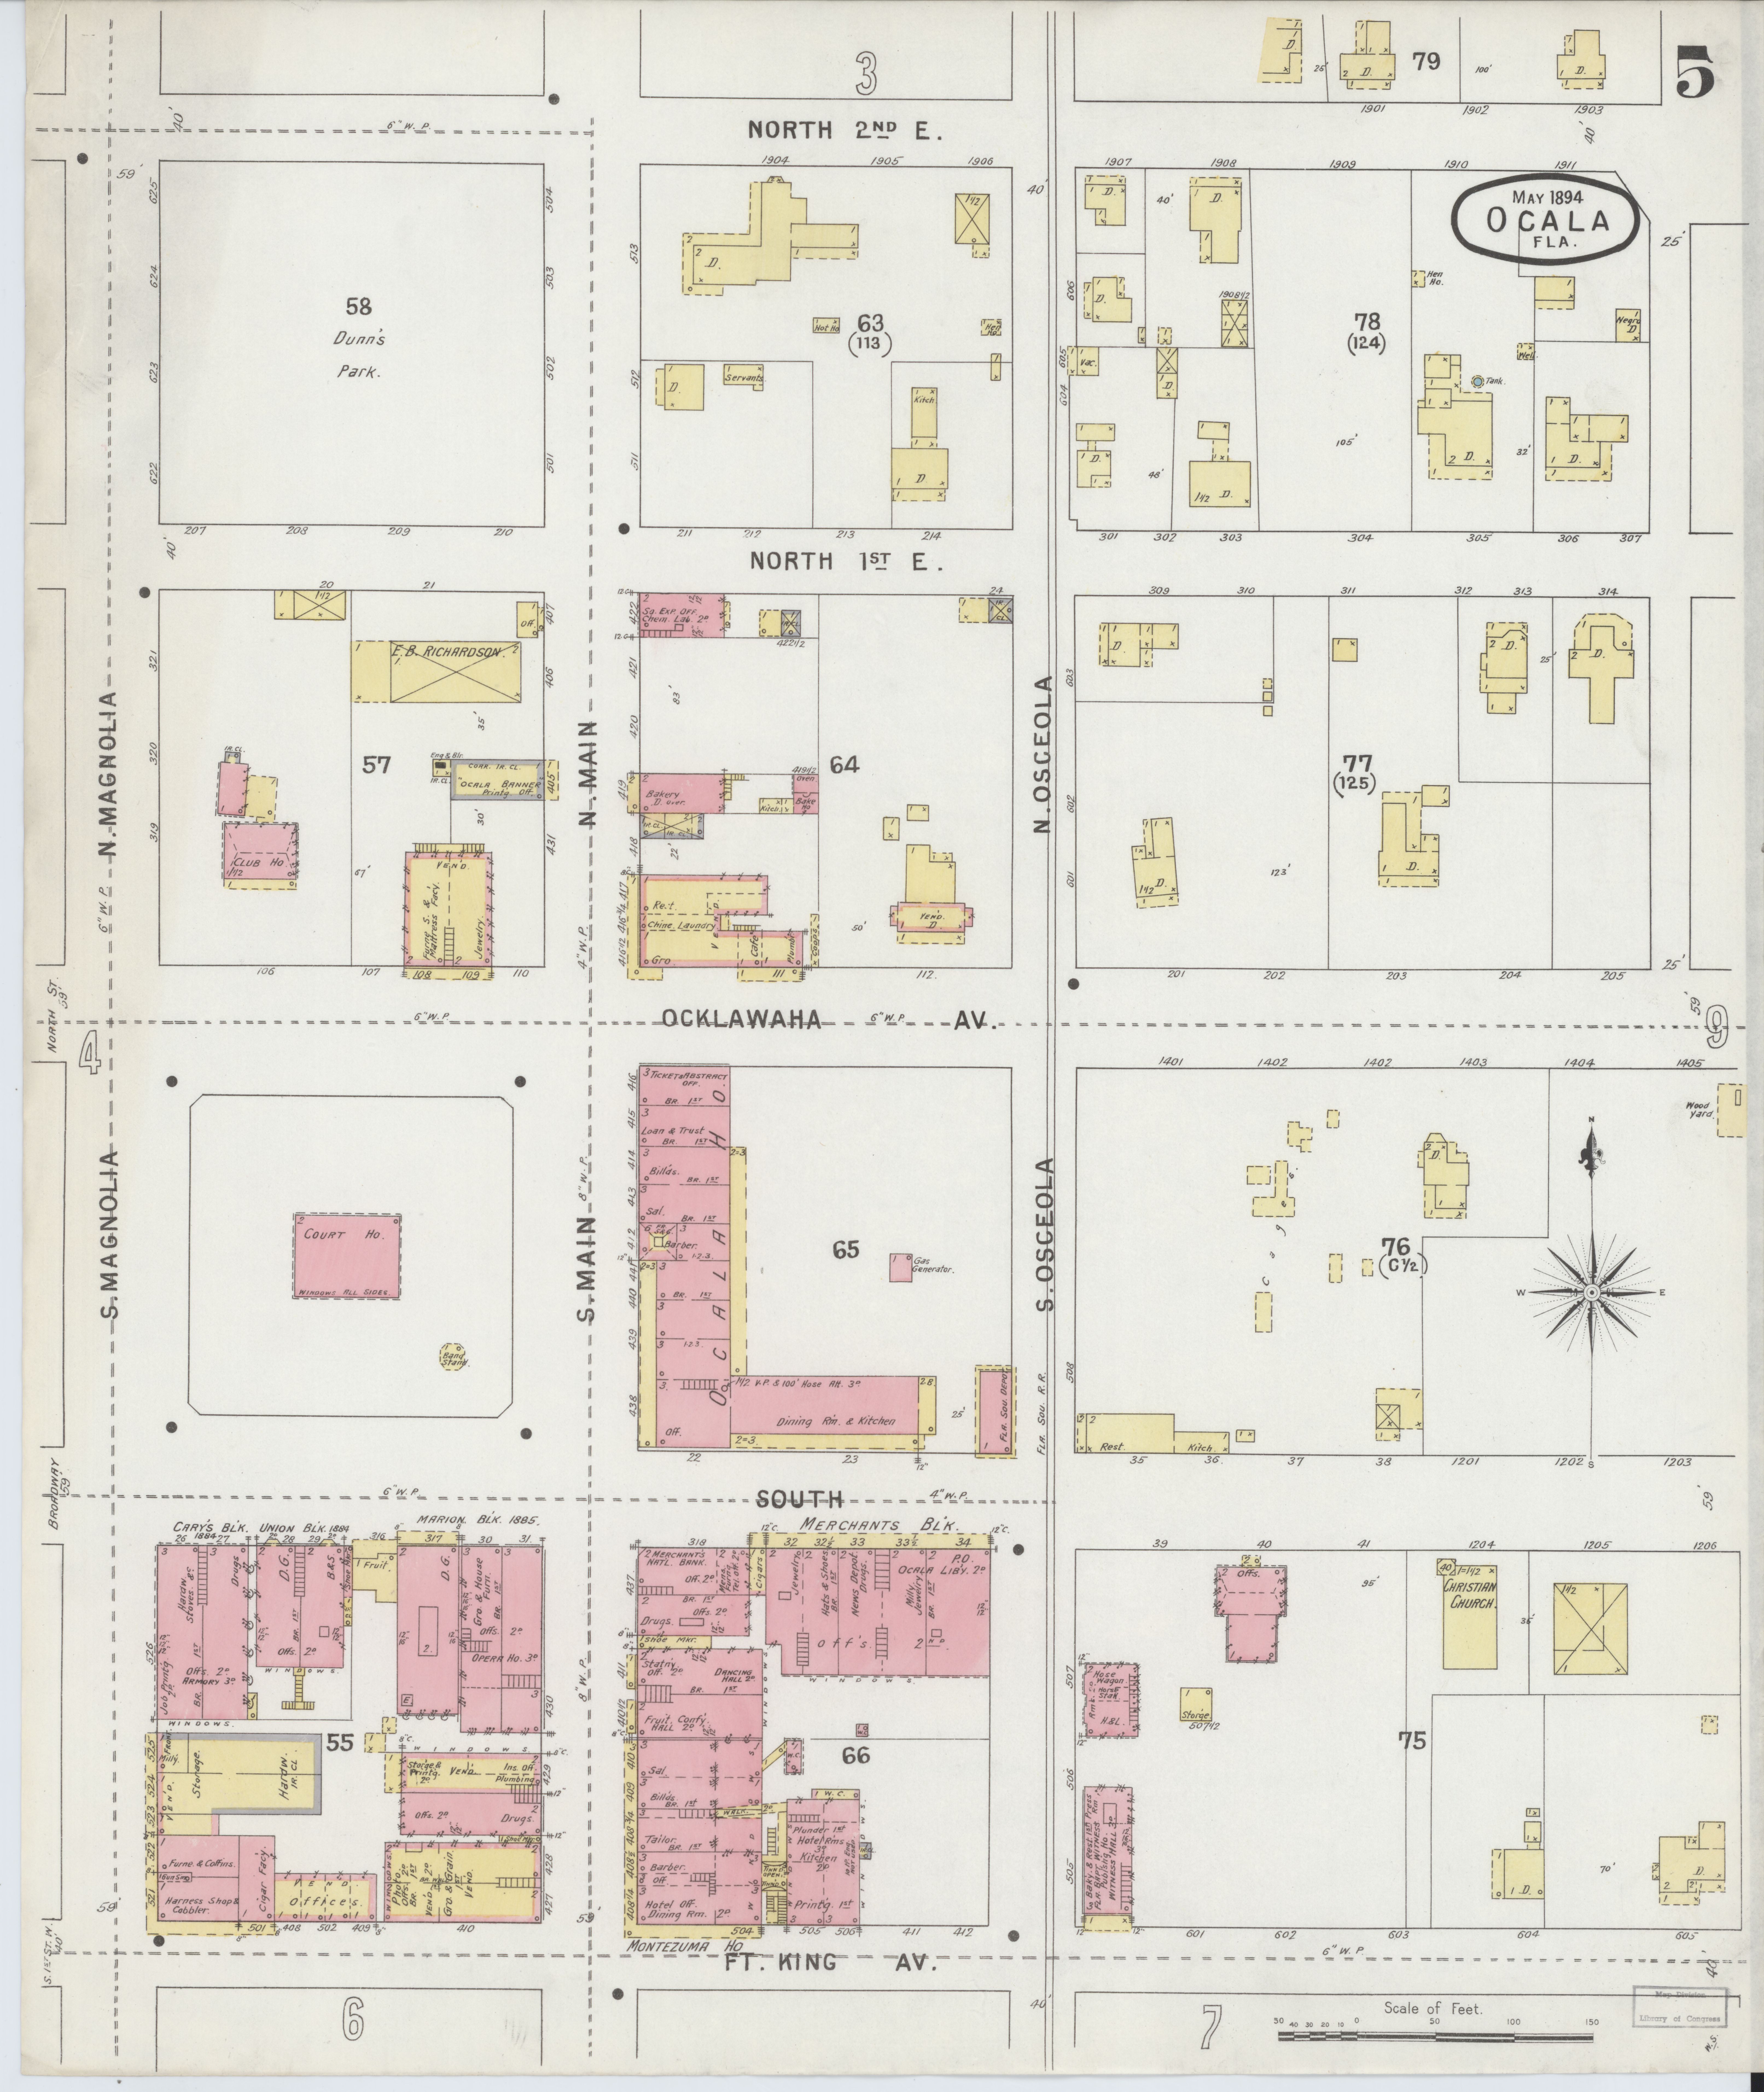 File:Sanborn Fire Insurance Map from Ocala, Marion County, Florida on map of chokoloskee florida, map of saint lucie florida, map of dover florida, map of south gulf cove florida, map of ft. walton florida, map of port of miami florida, map of orlando florida, map of ruskin florida, map of the acreage florida, full large map of florida, map of coconut grove florida, map of lakeland florida, map of indian creek florida, map of tampa florida, map of everglades florida, map of lawtey florida, map of gainesville florida, map of micco florida, map of orange springs florida, map of davie florida,